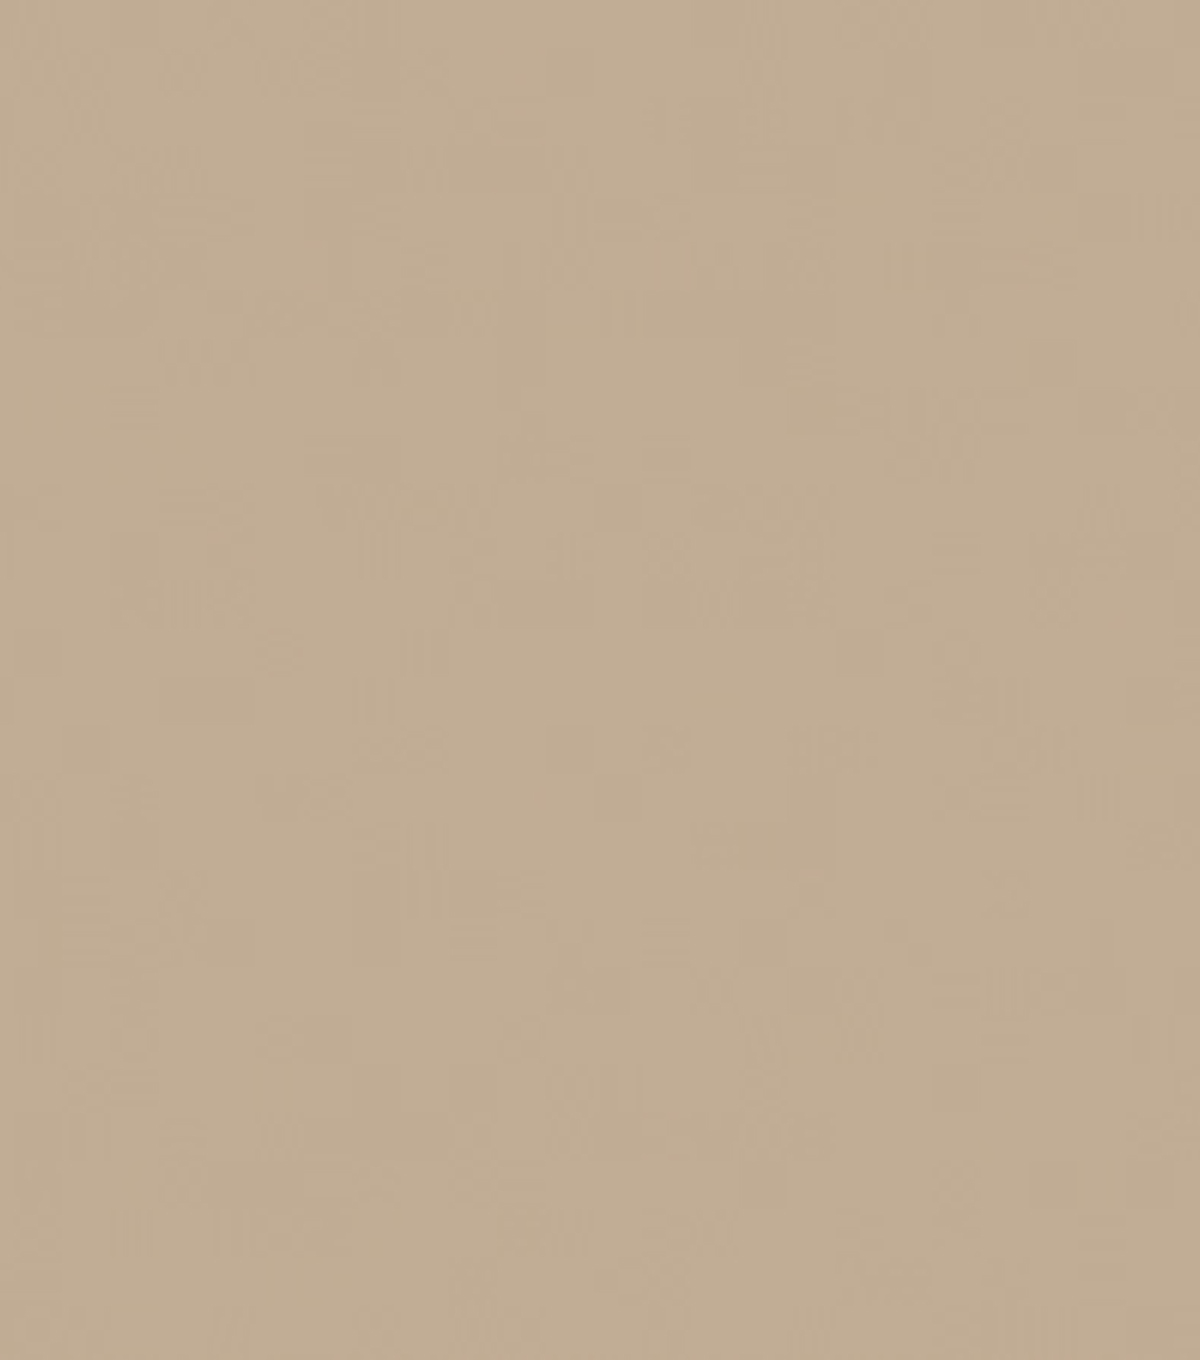 Delta Ceramcoat Acrylic Paint 2 oz, Bambi Brown